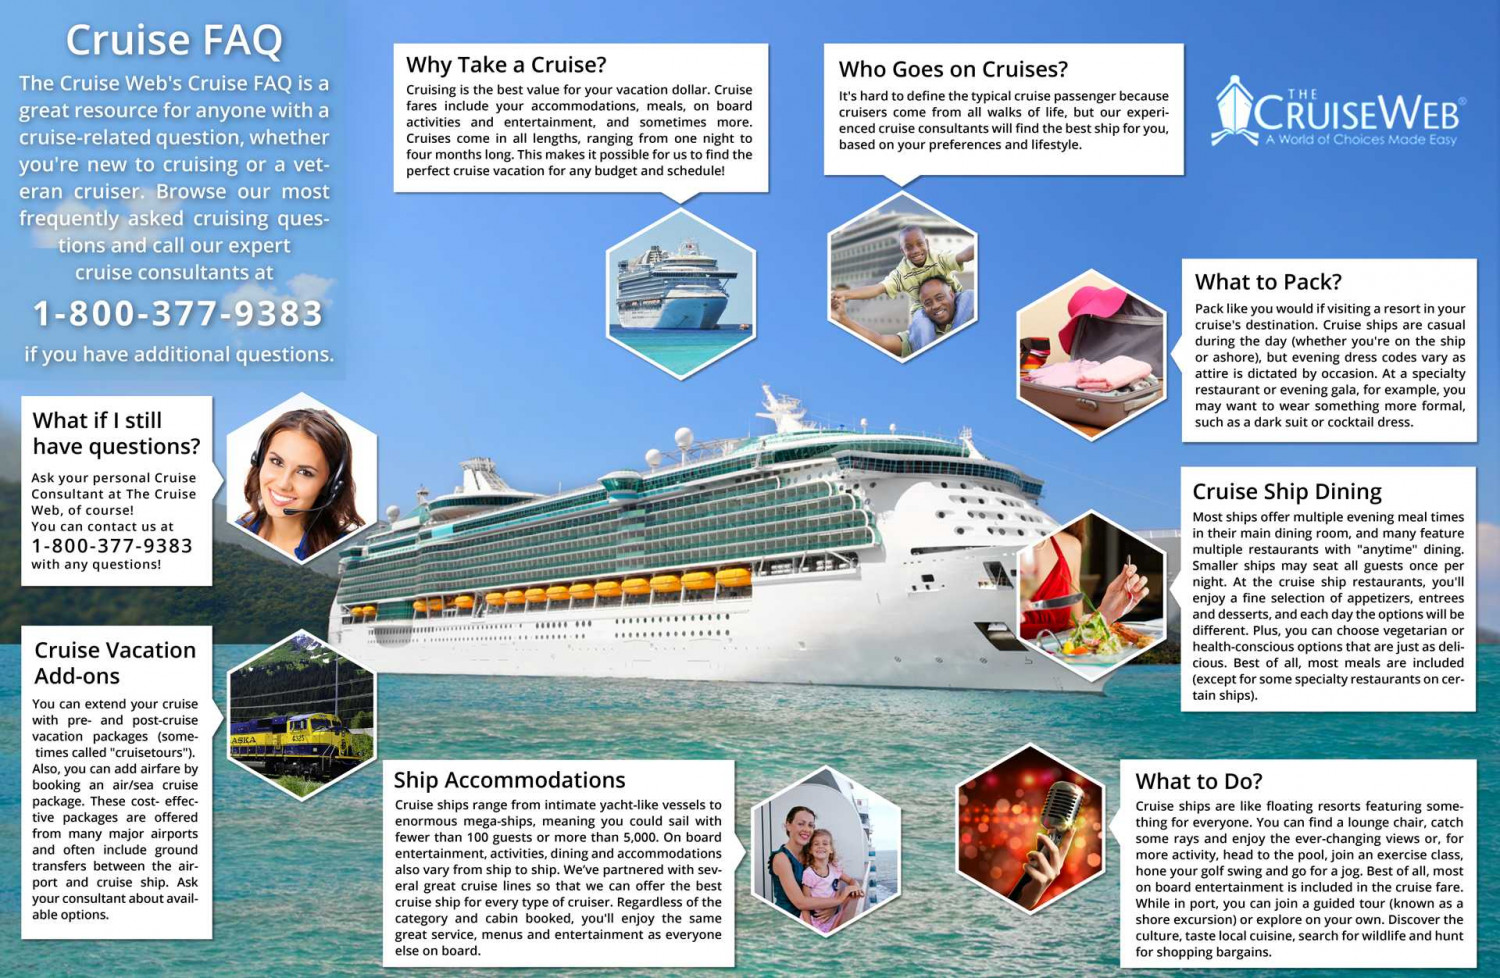 Cruise Trip Related FAQs and Answers by The Cruise Web